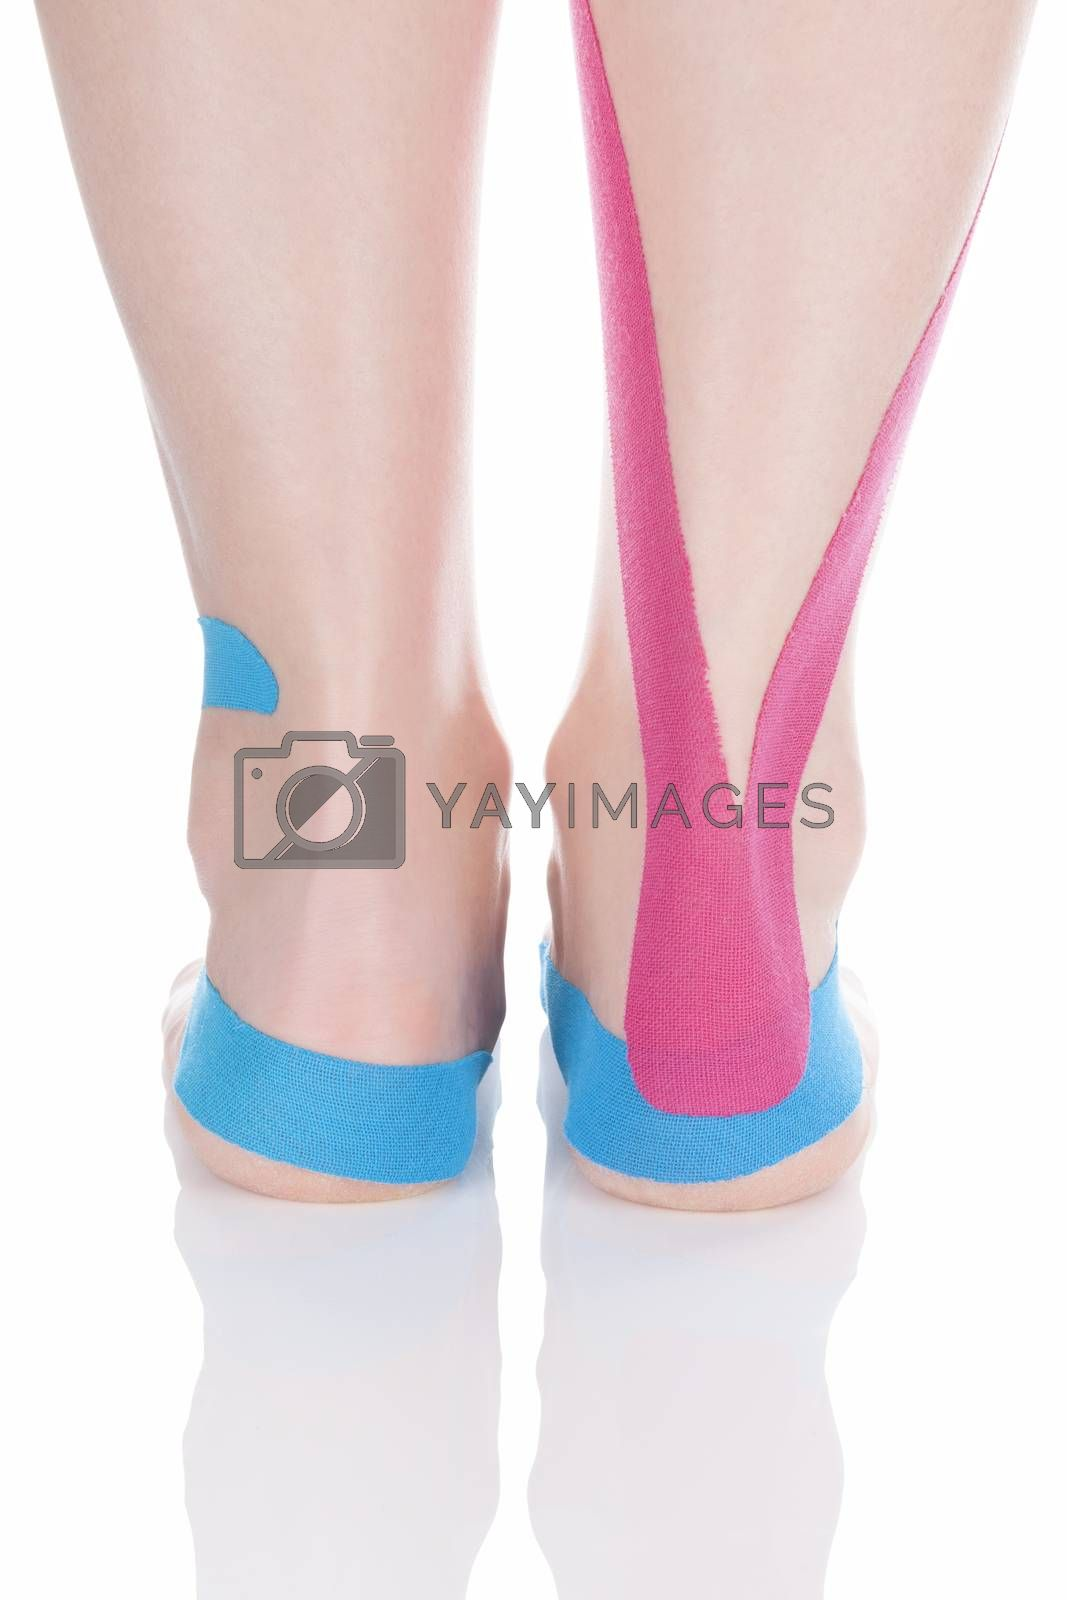 Therapeutic tape on female calf isolated on white background. Chronic pain, alternative medicine. Rehabilitation and physiotherapy. Calf pain.